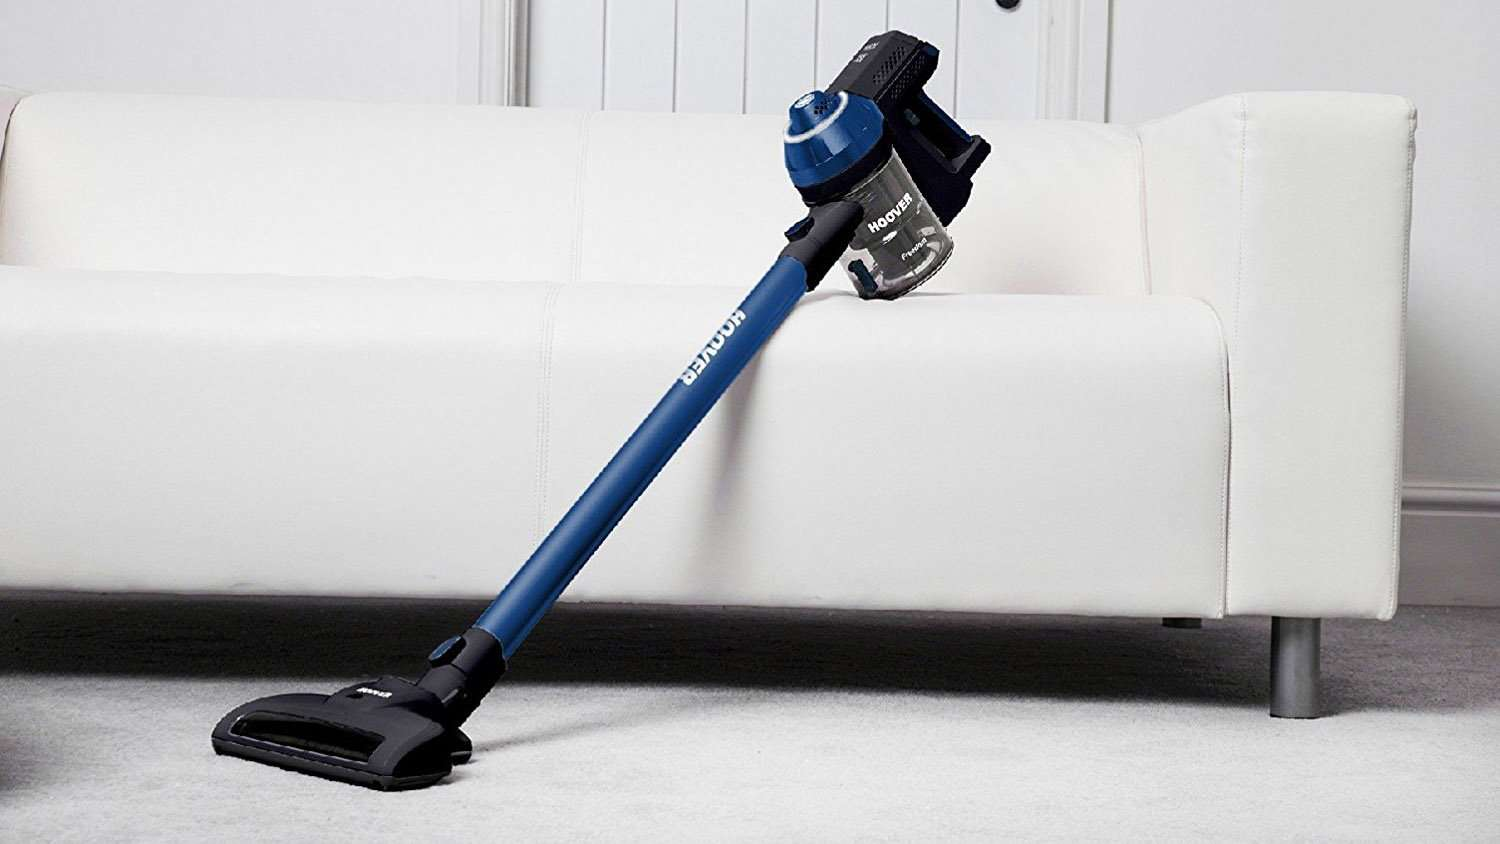 Hoover FD22L Freedom Lite review